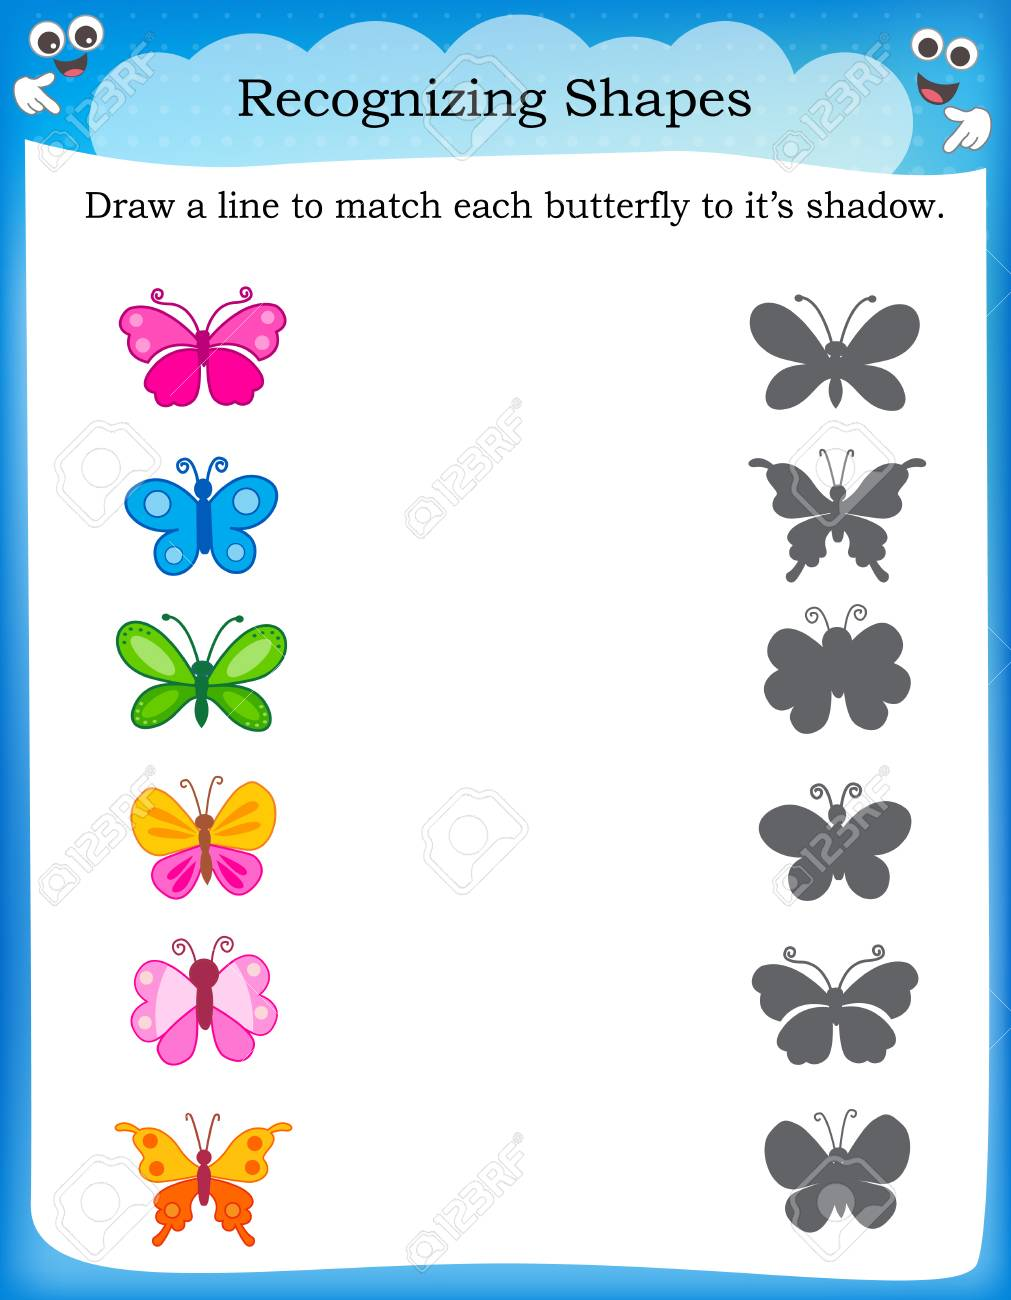 hight resolution of Worksheet Recognizing Shapes   Draw A Line To Match Butterflies.. Royalty  Free Cliparts